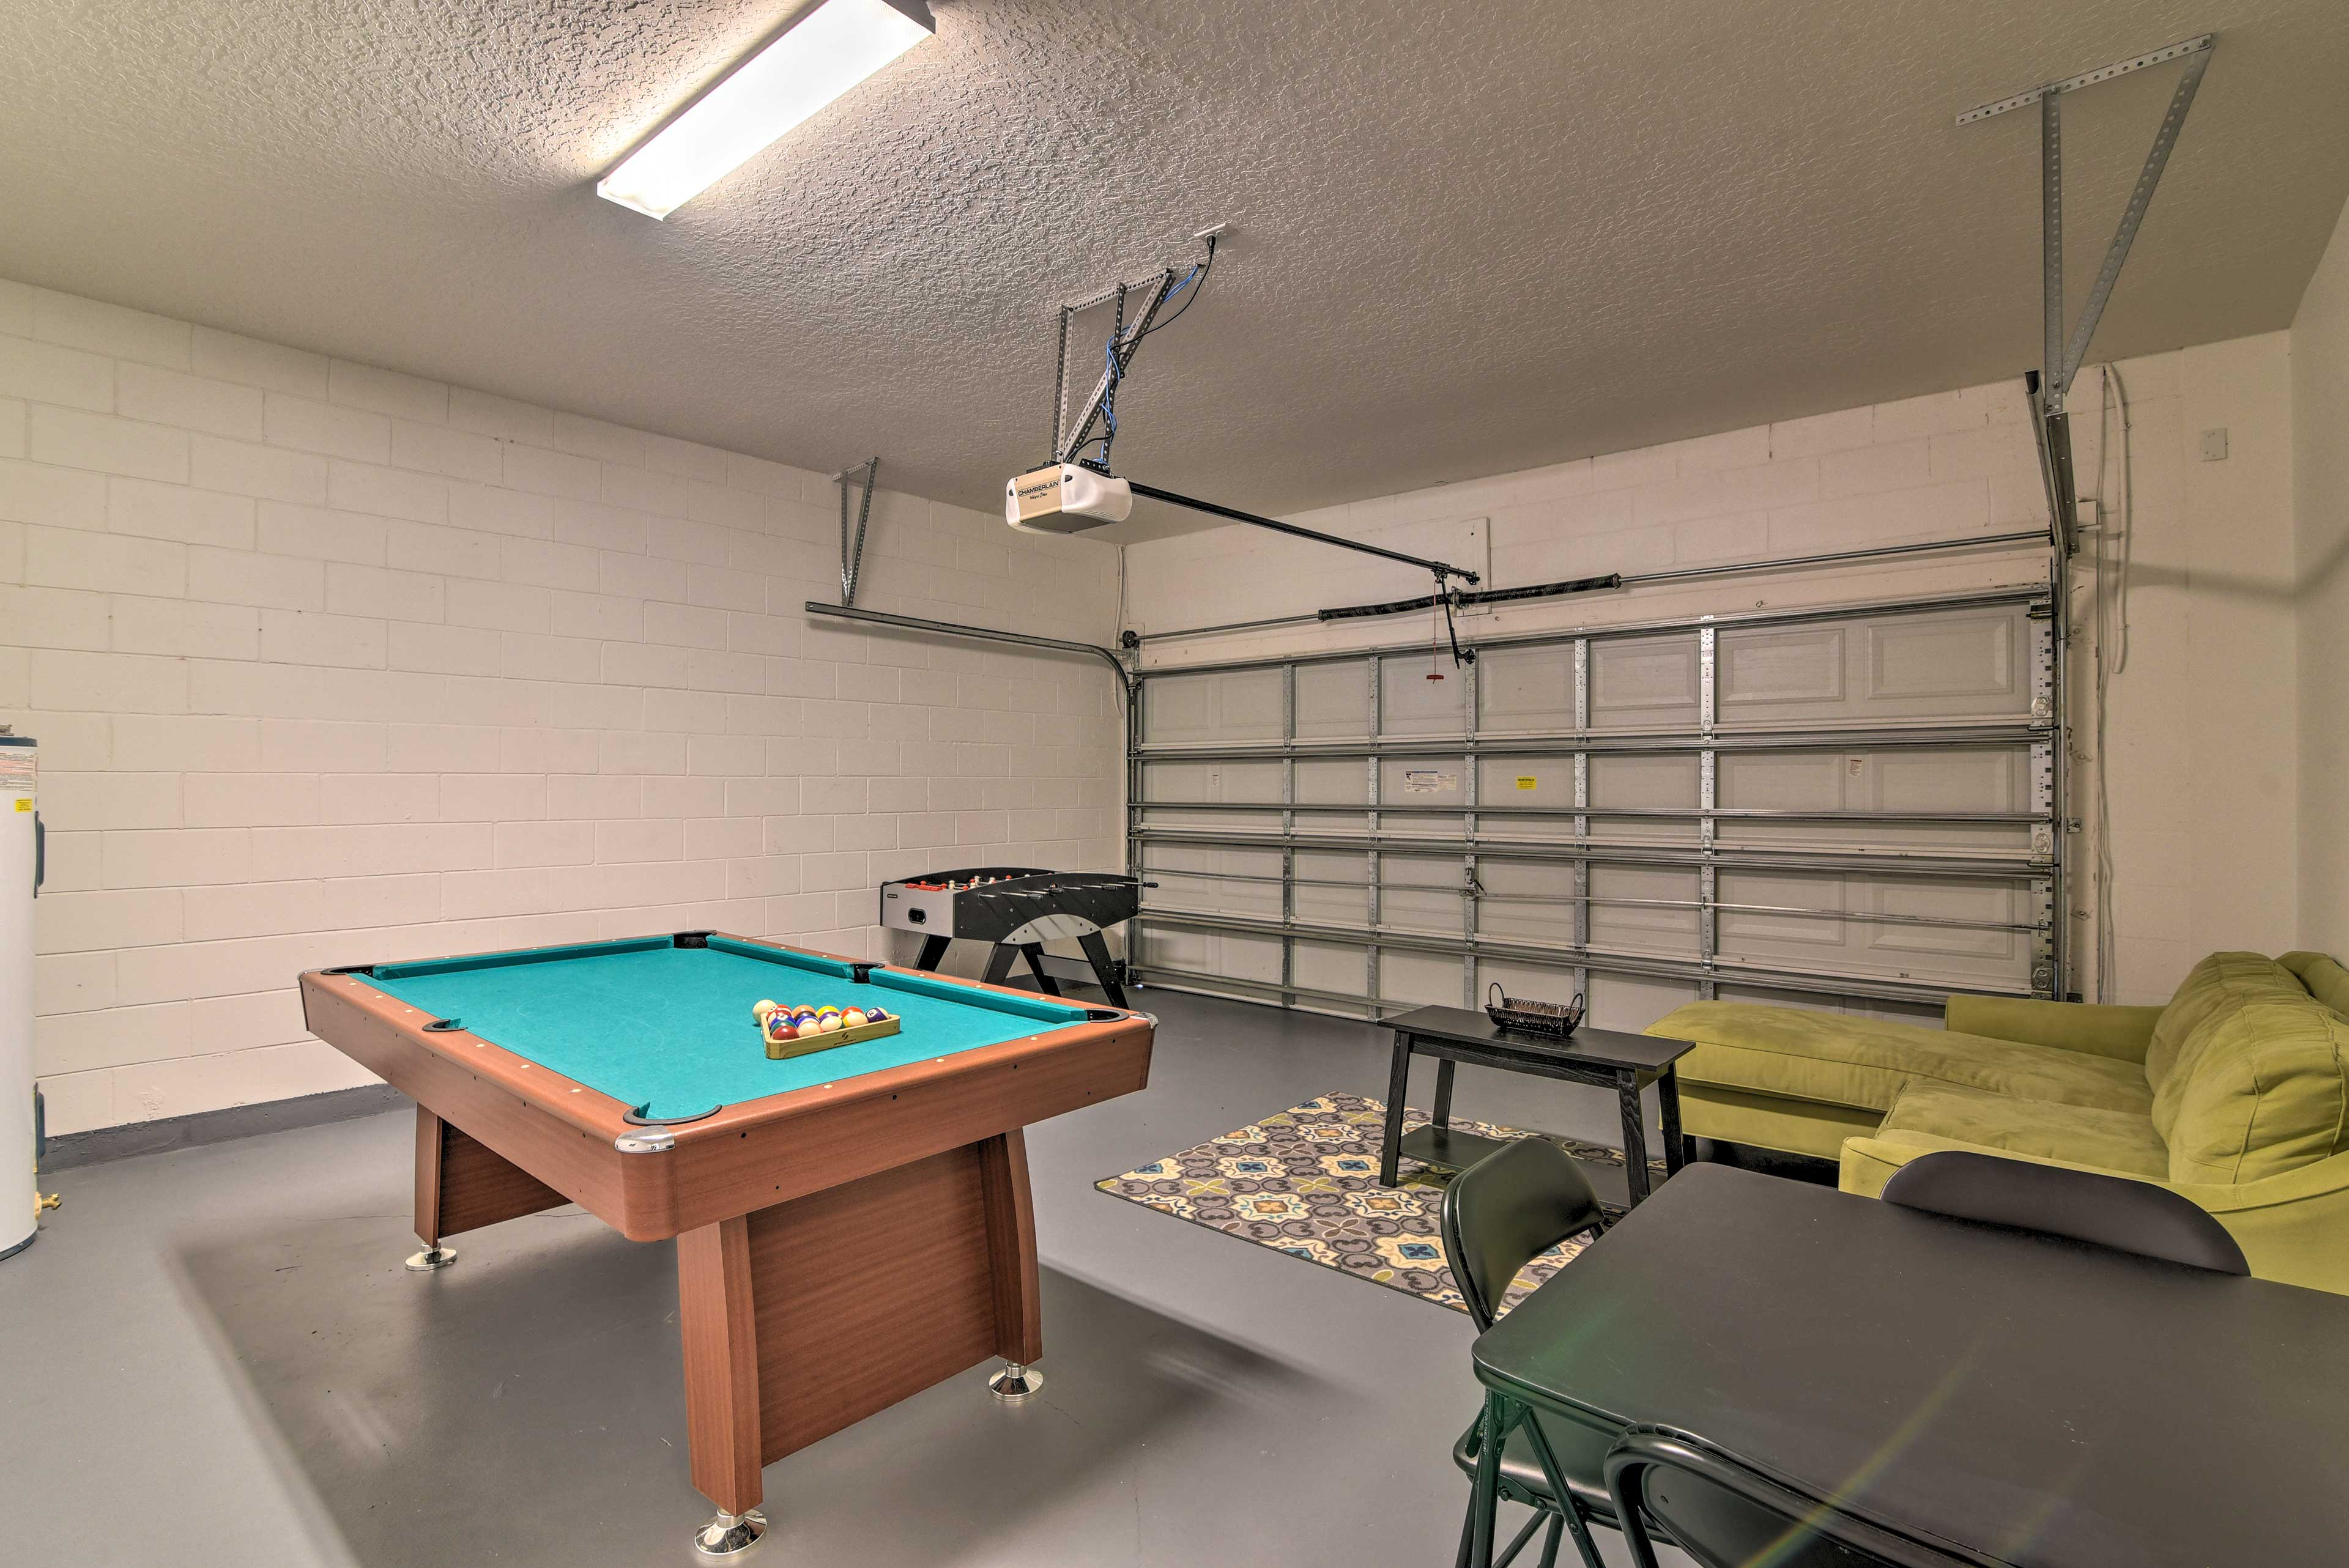 Show off your skills in the game room.